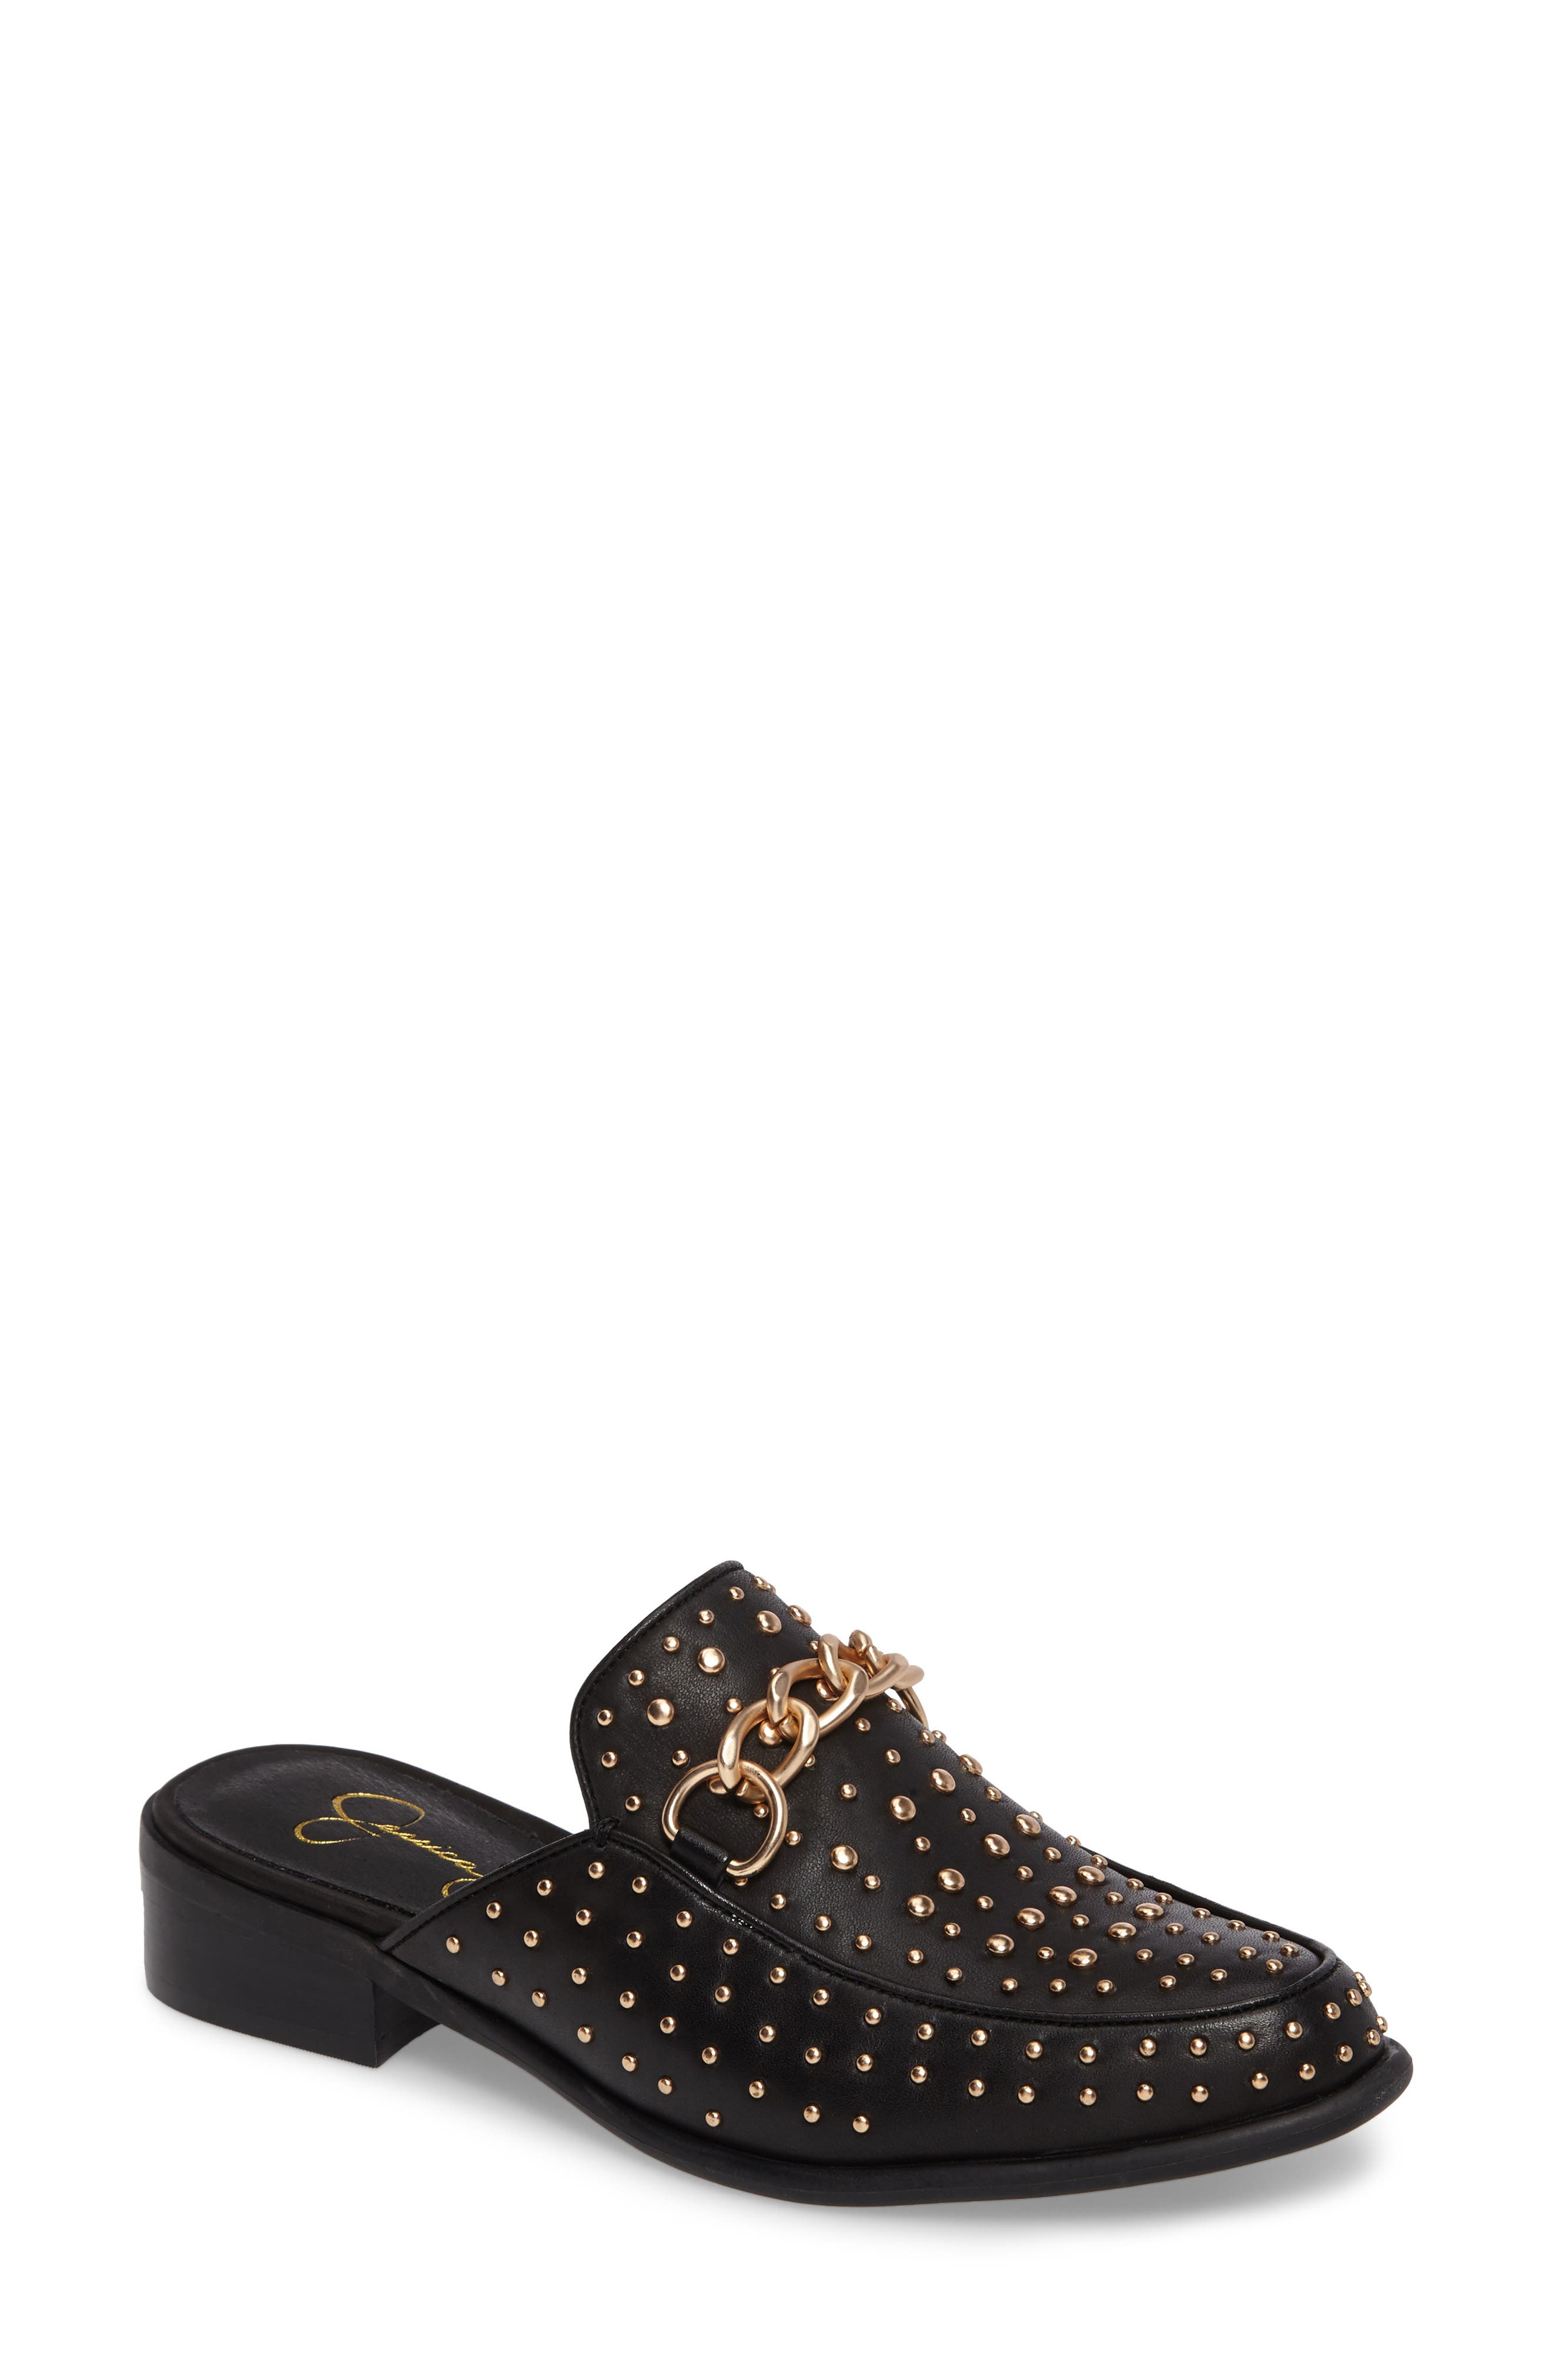 JESSICA SIMPSON Beez Loafer Mule